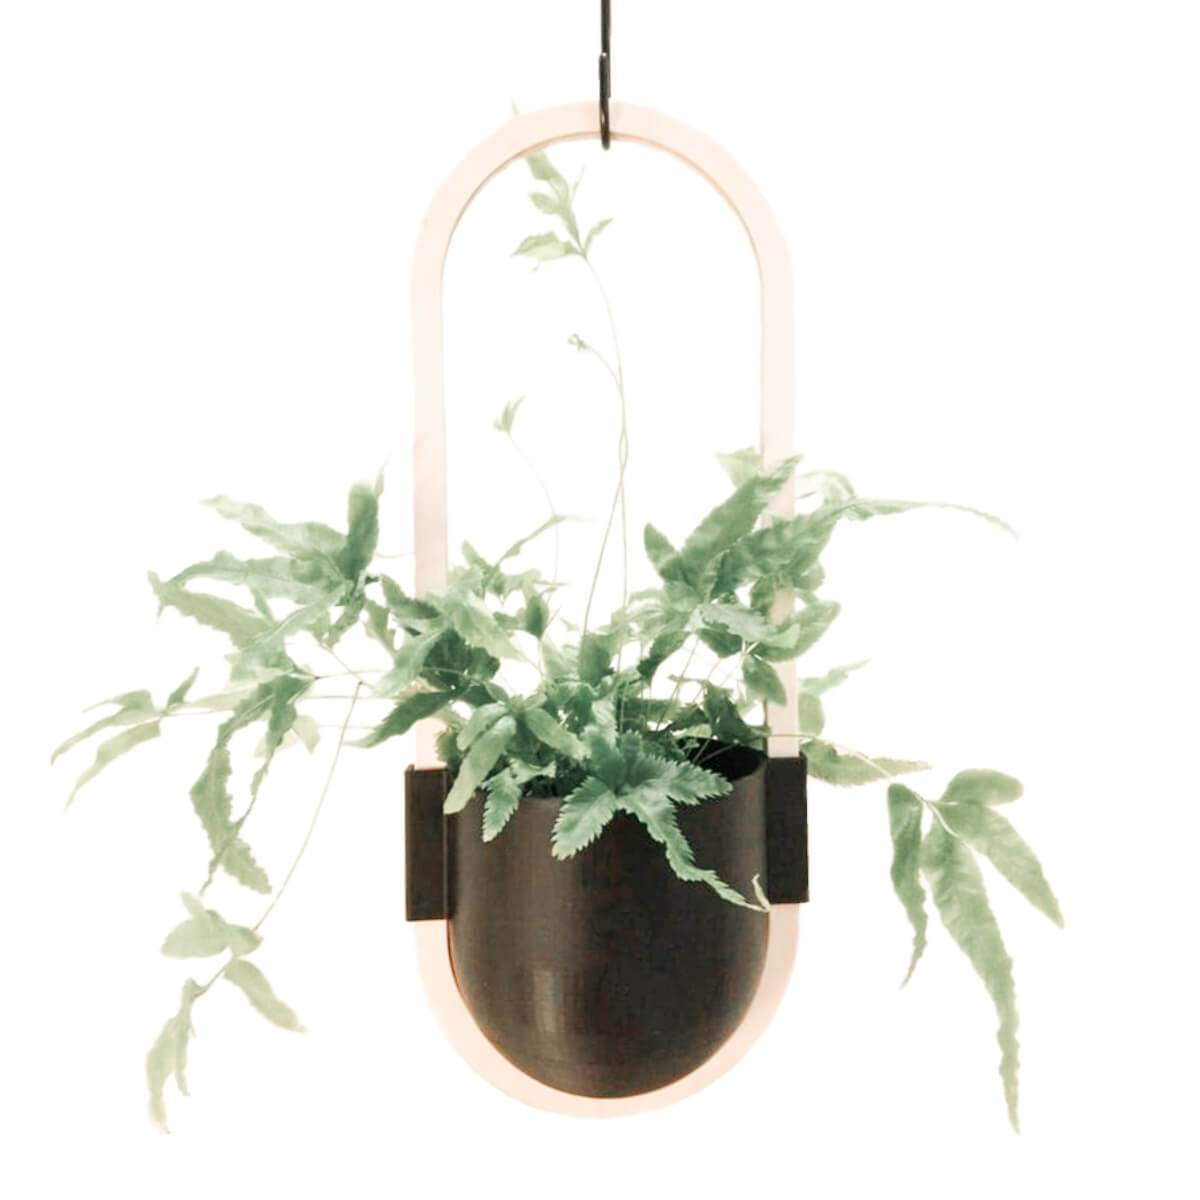 Minimalist Hanging Planter - Scandiscapes